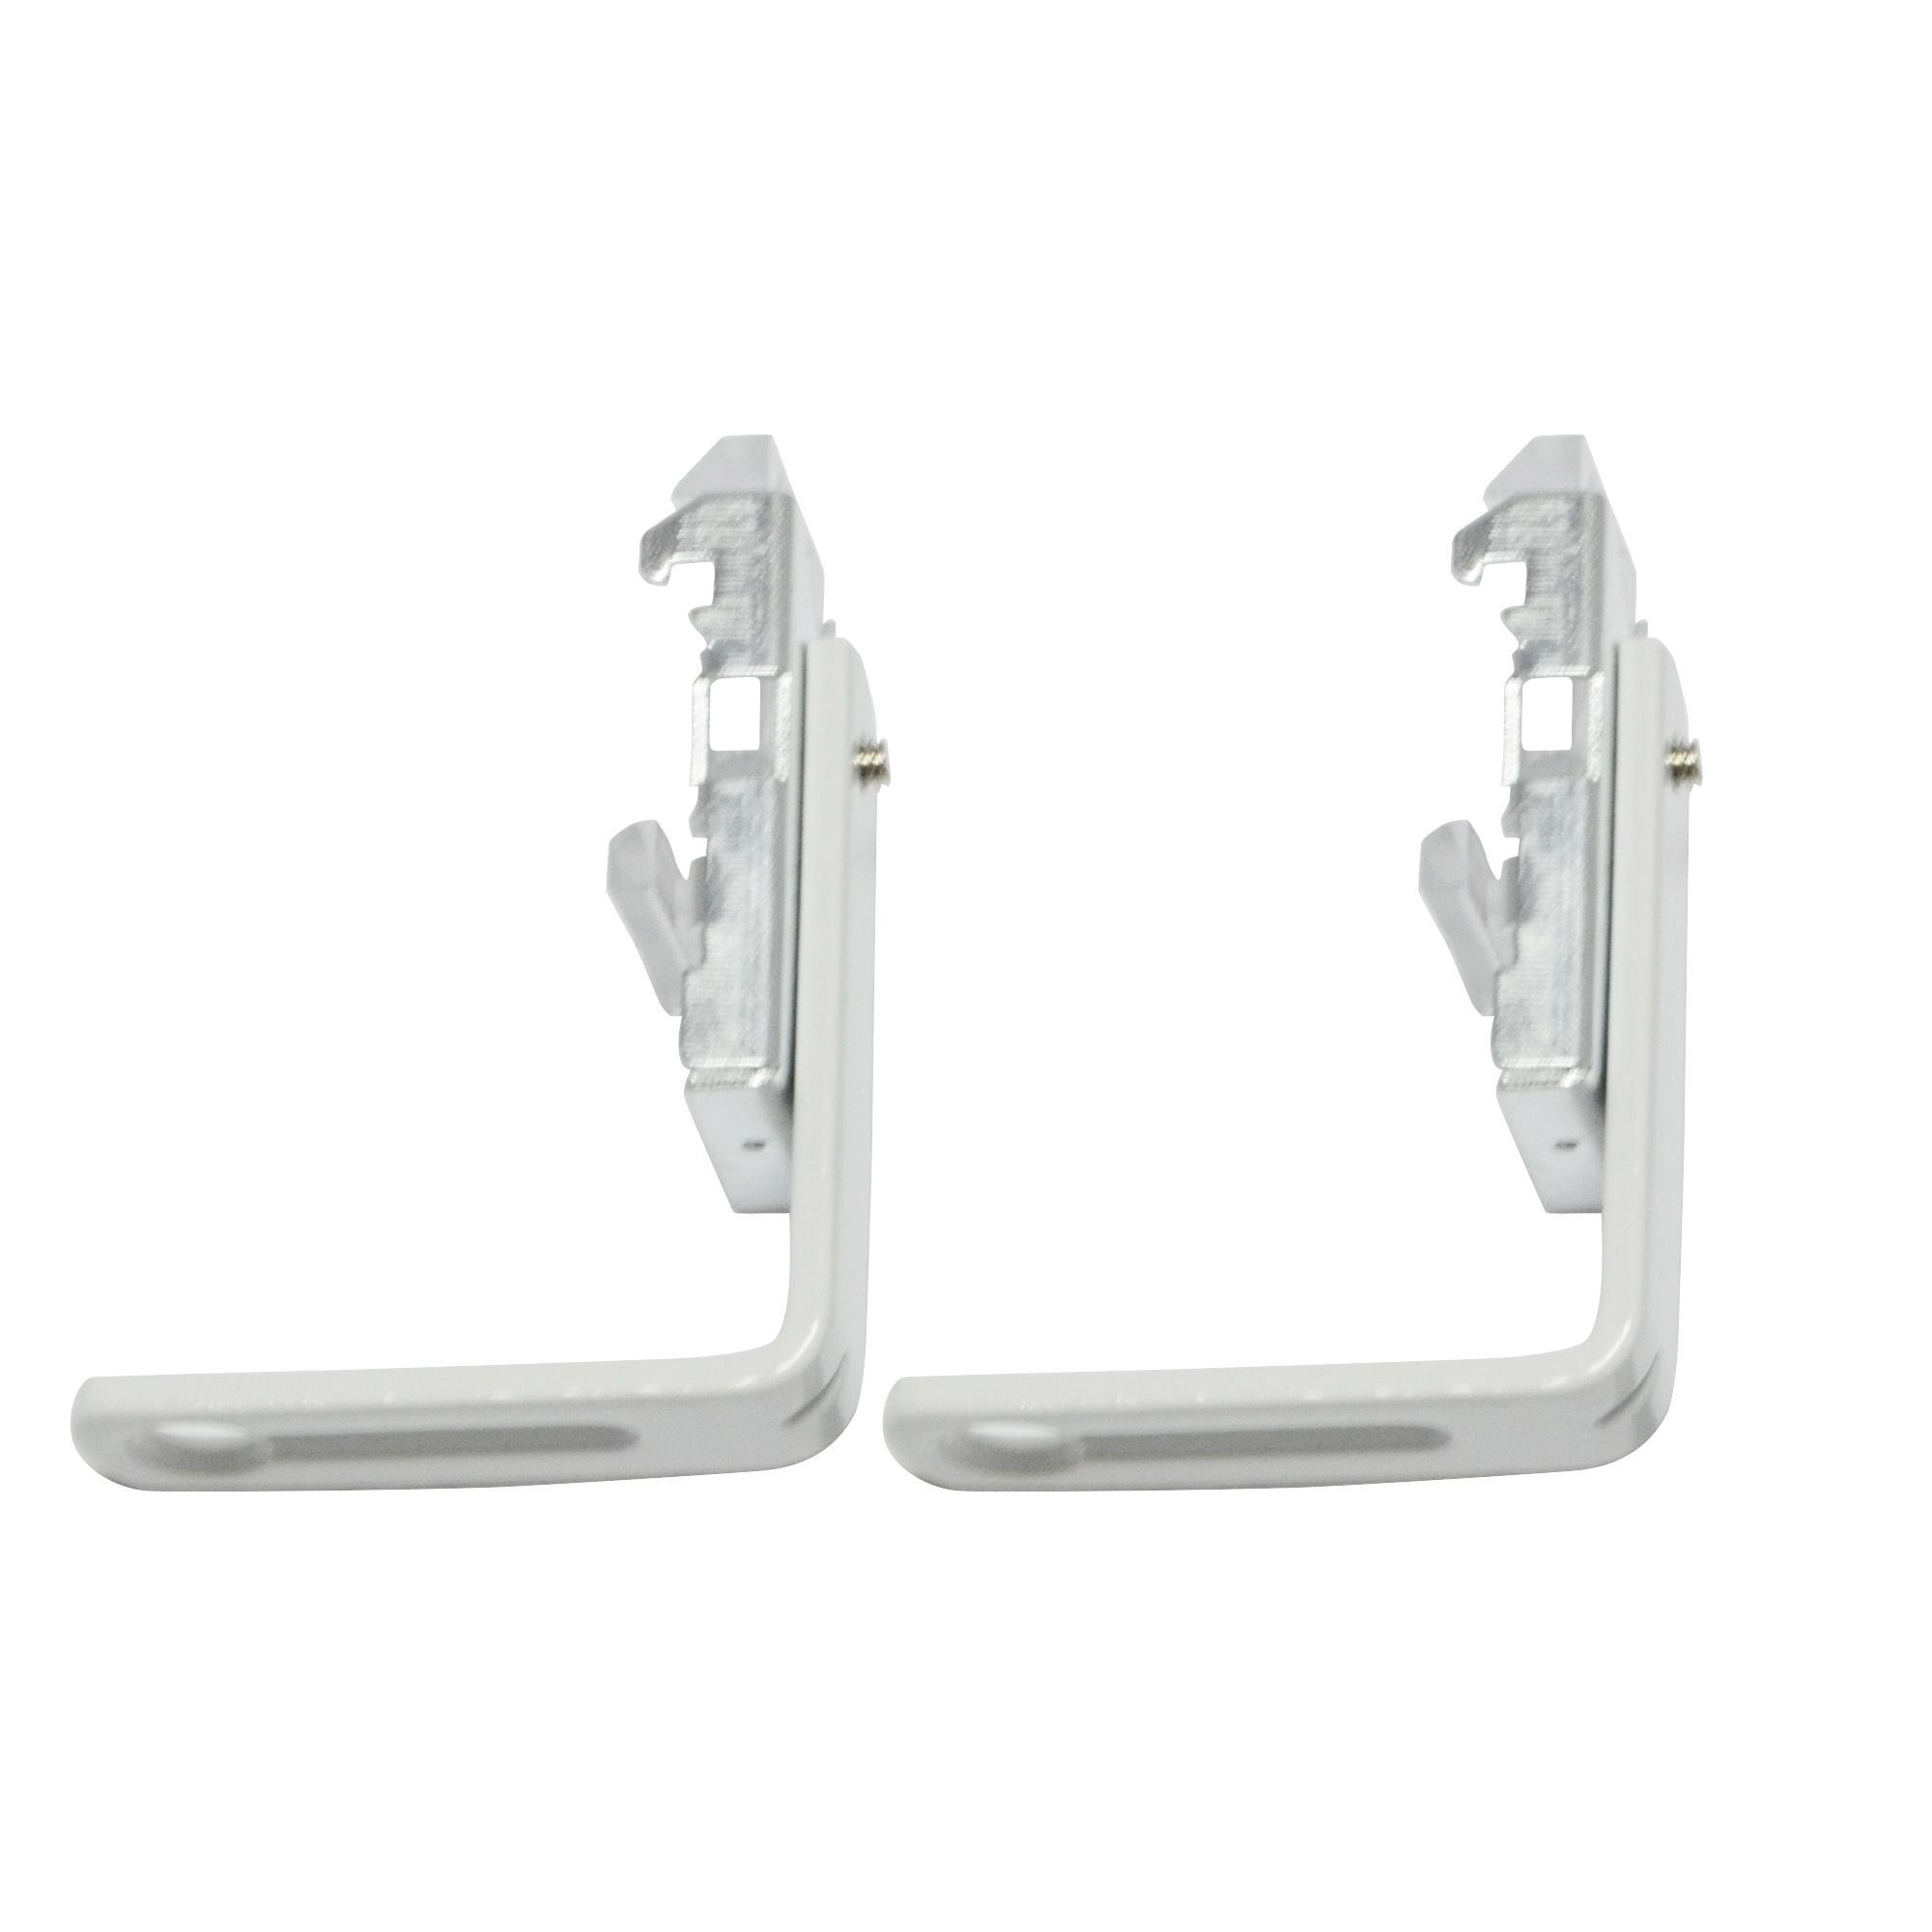 white metal curtain track bracket l 32mm pack of 2. Black Bedroom Furniture Sets. Home Design Ideas